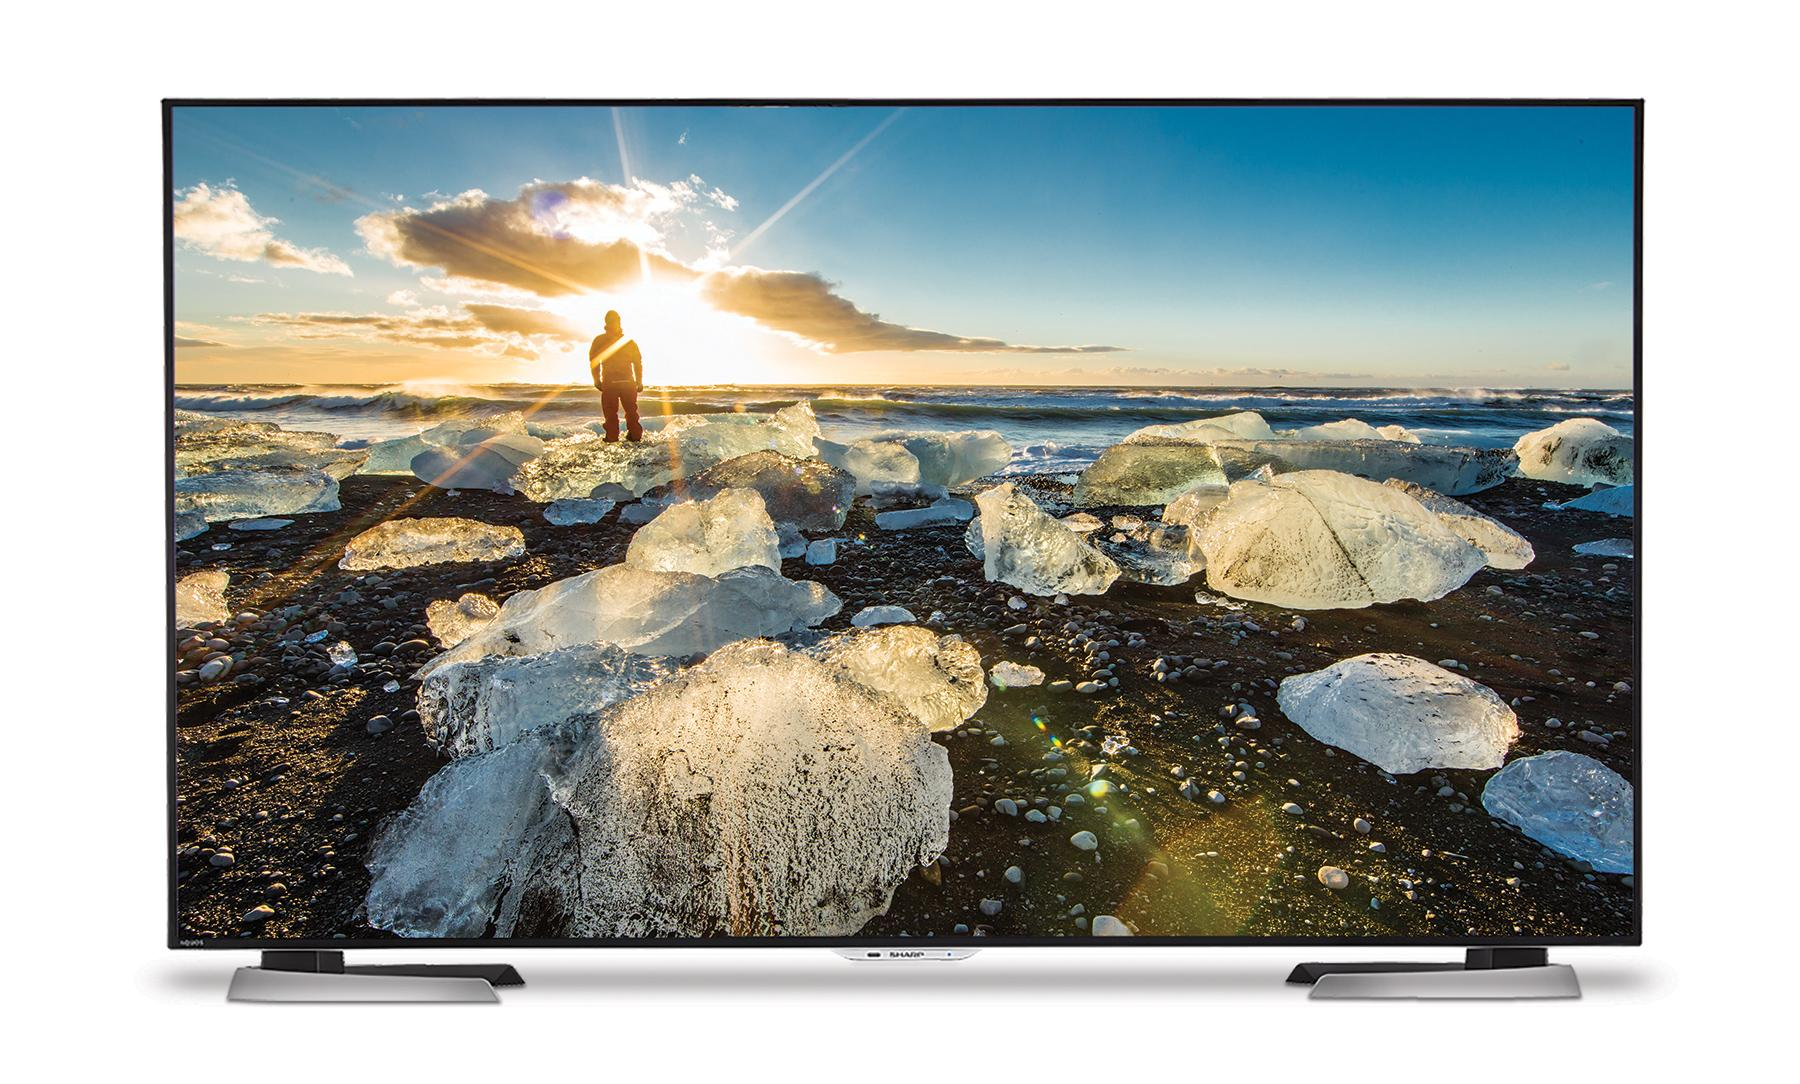 theater sharps new thx k certified ultra hd led tv lineup feast eyes